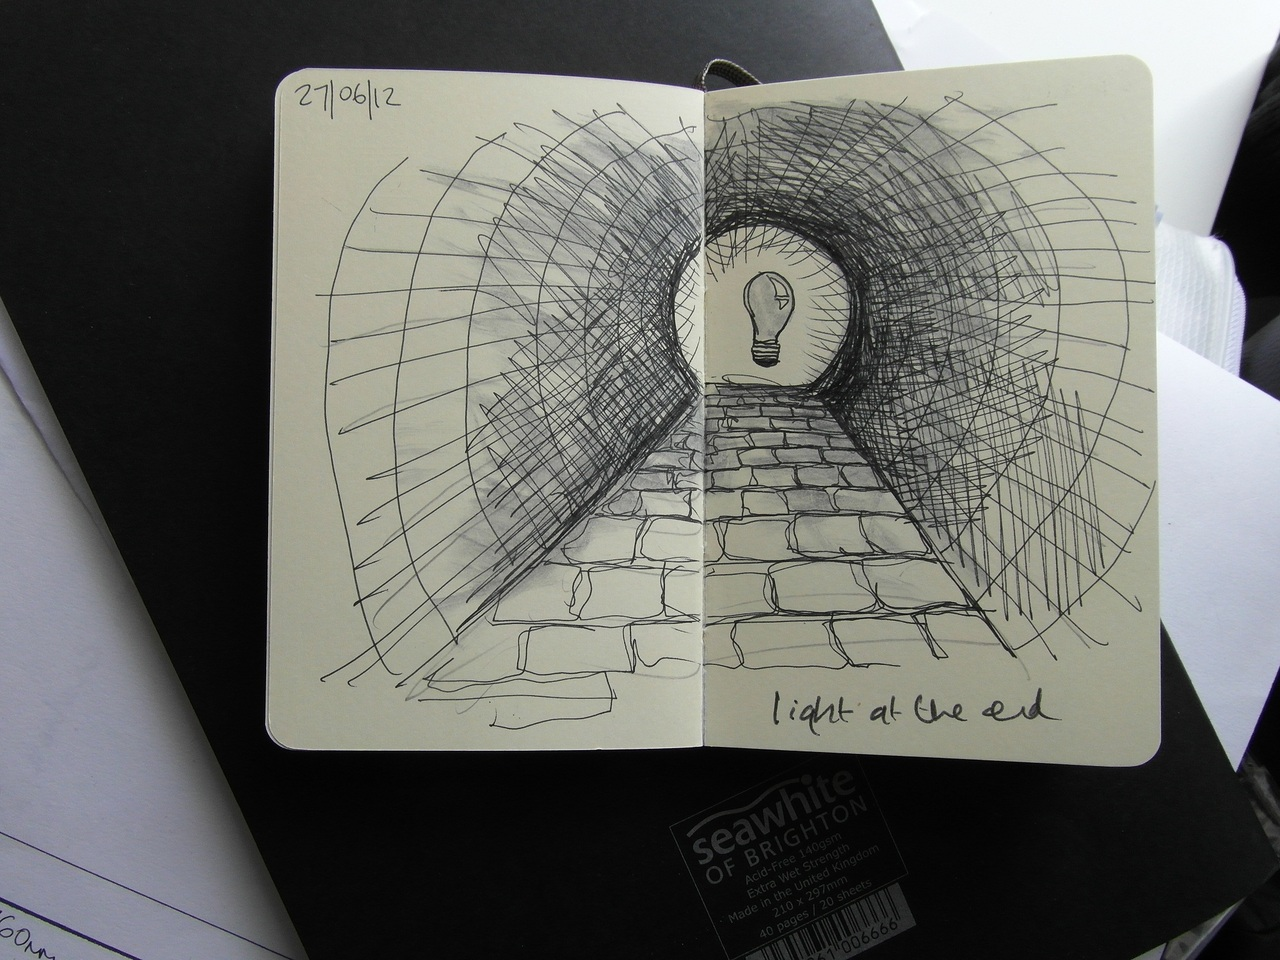 365 drawings later … day 148 … light at the end